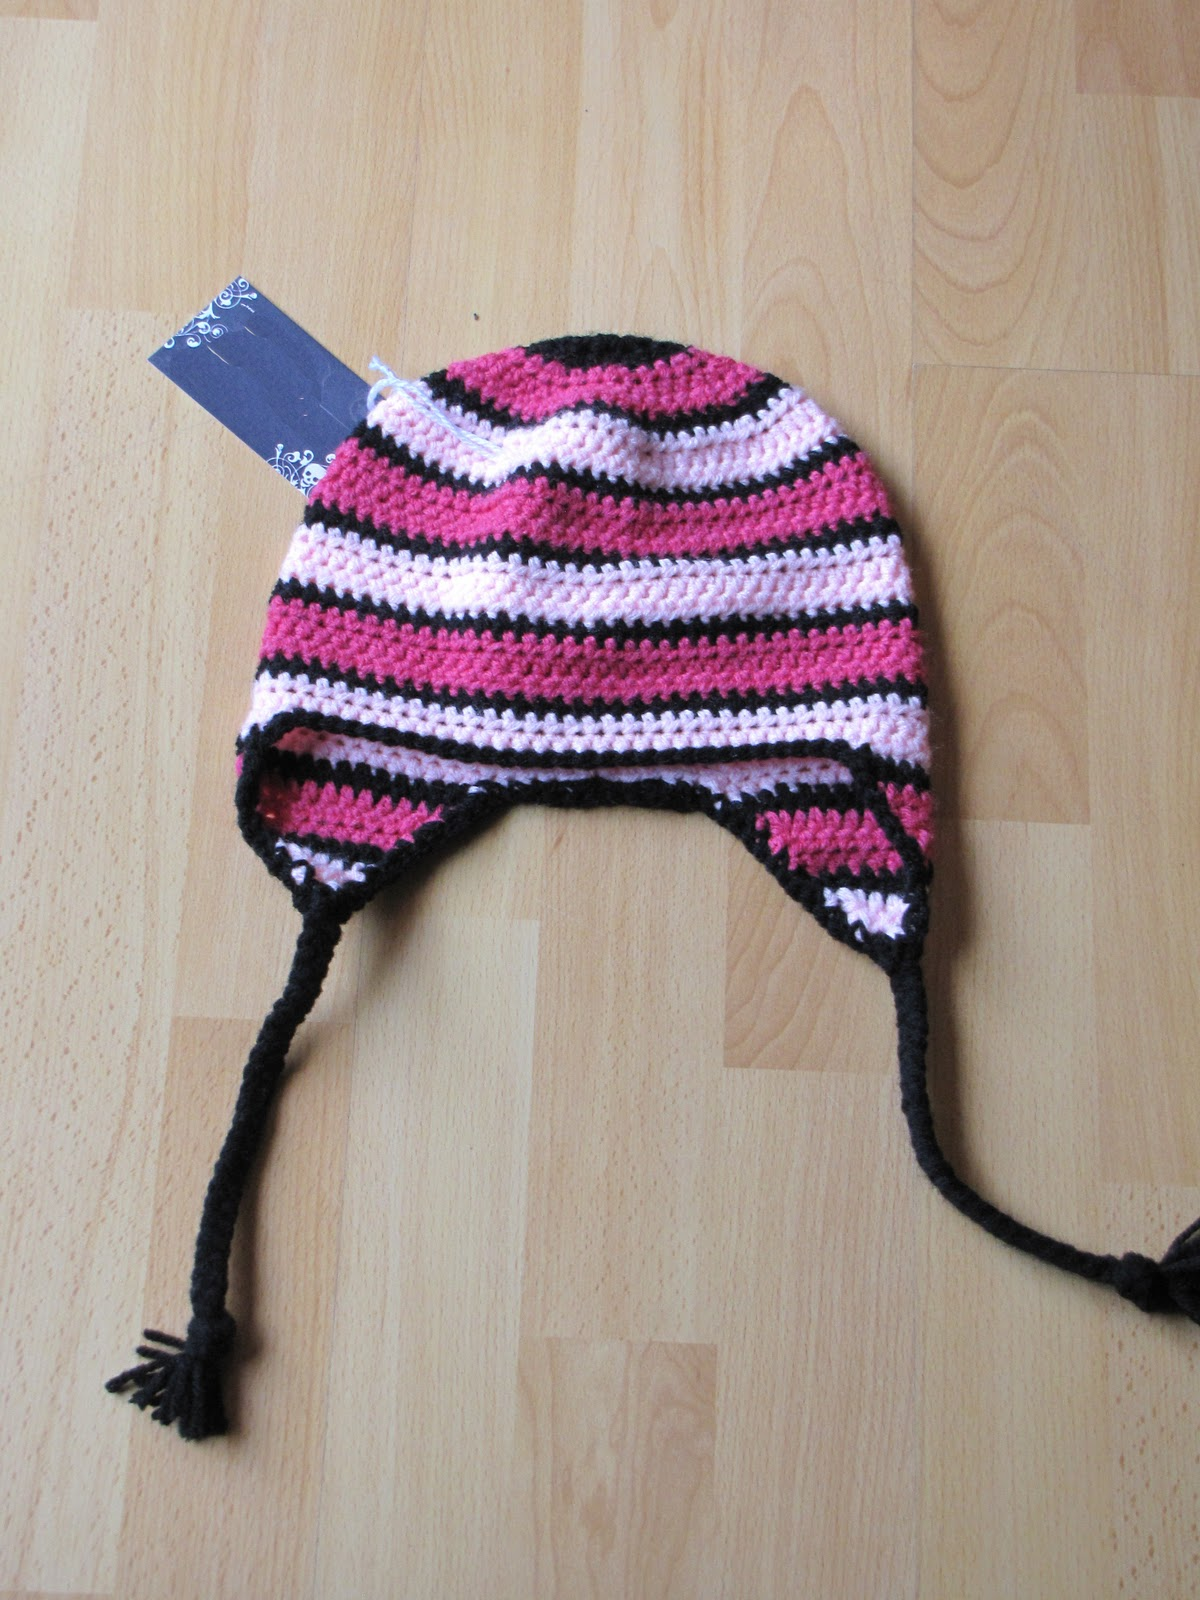 Easy Crochet Hat Pattern With Ear Flaps : Niks Knots: Canadian Love Easy Ear-flap Toque